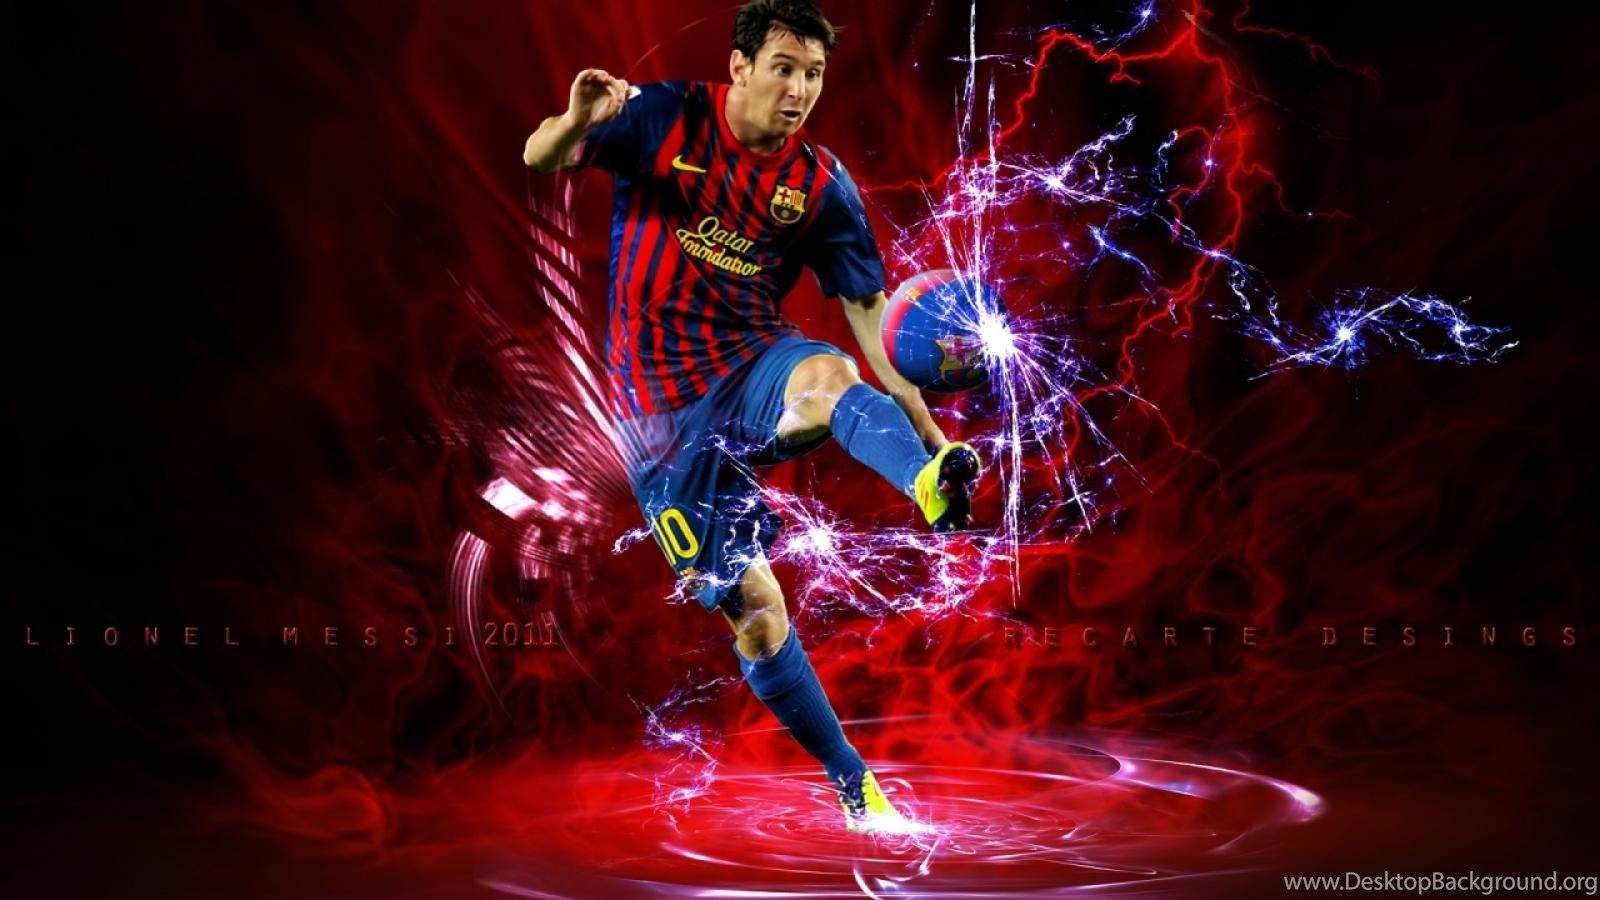 Football Wallpapers Free Download Pc Hd Wallpapers Football Desktop Background